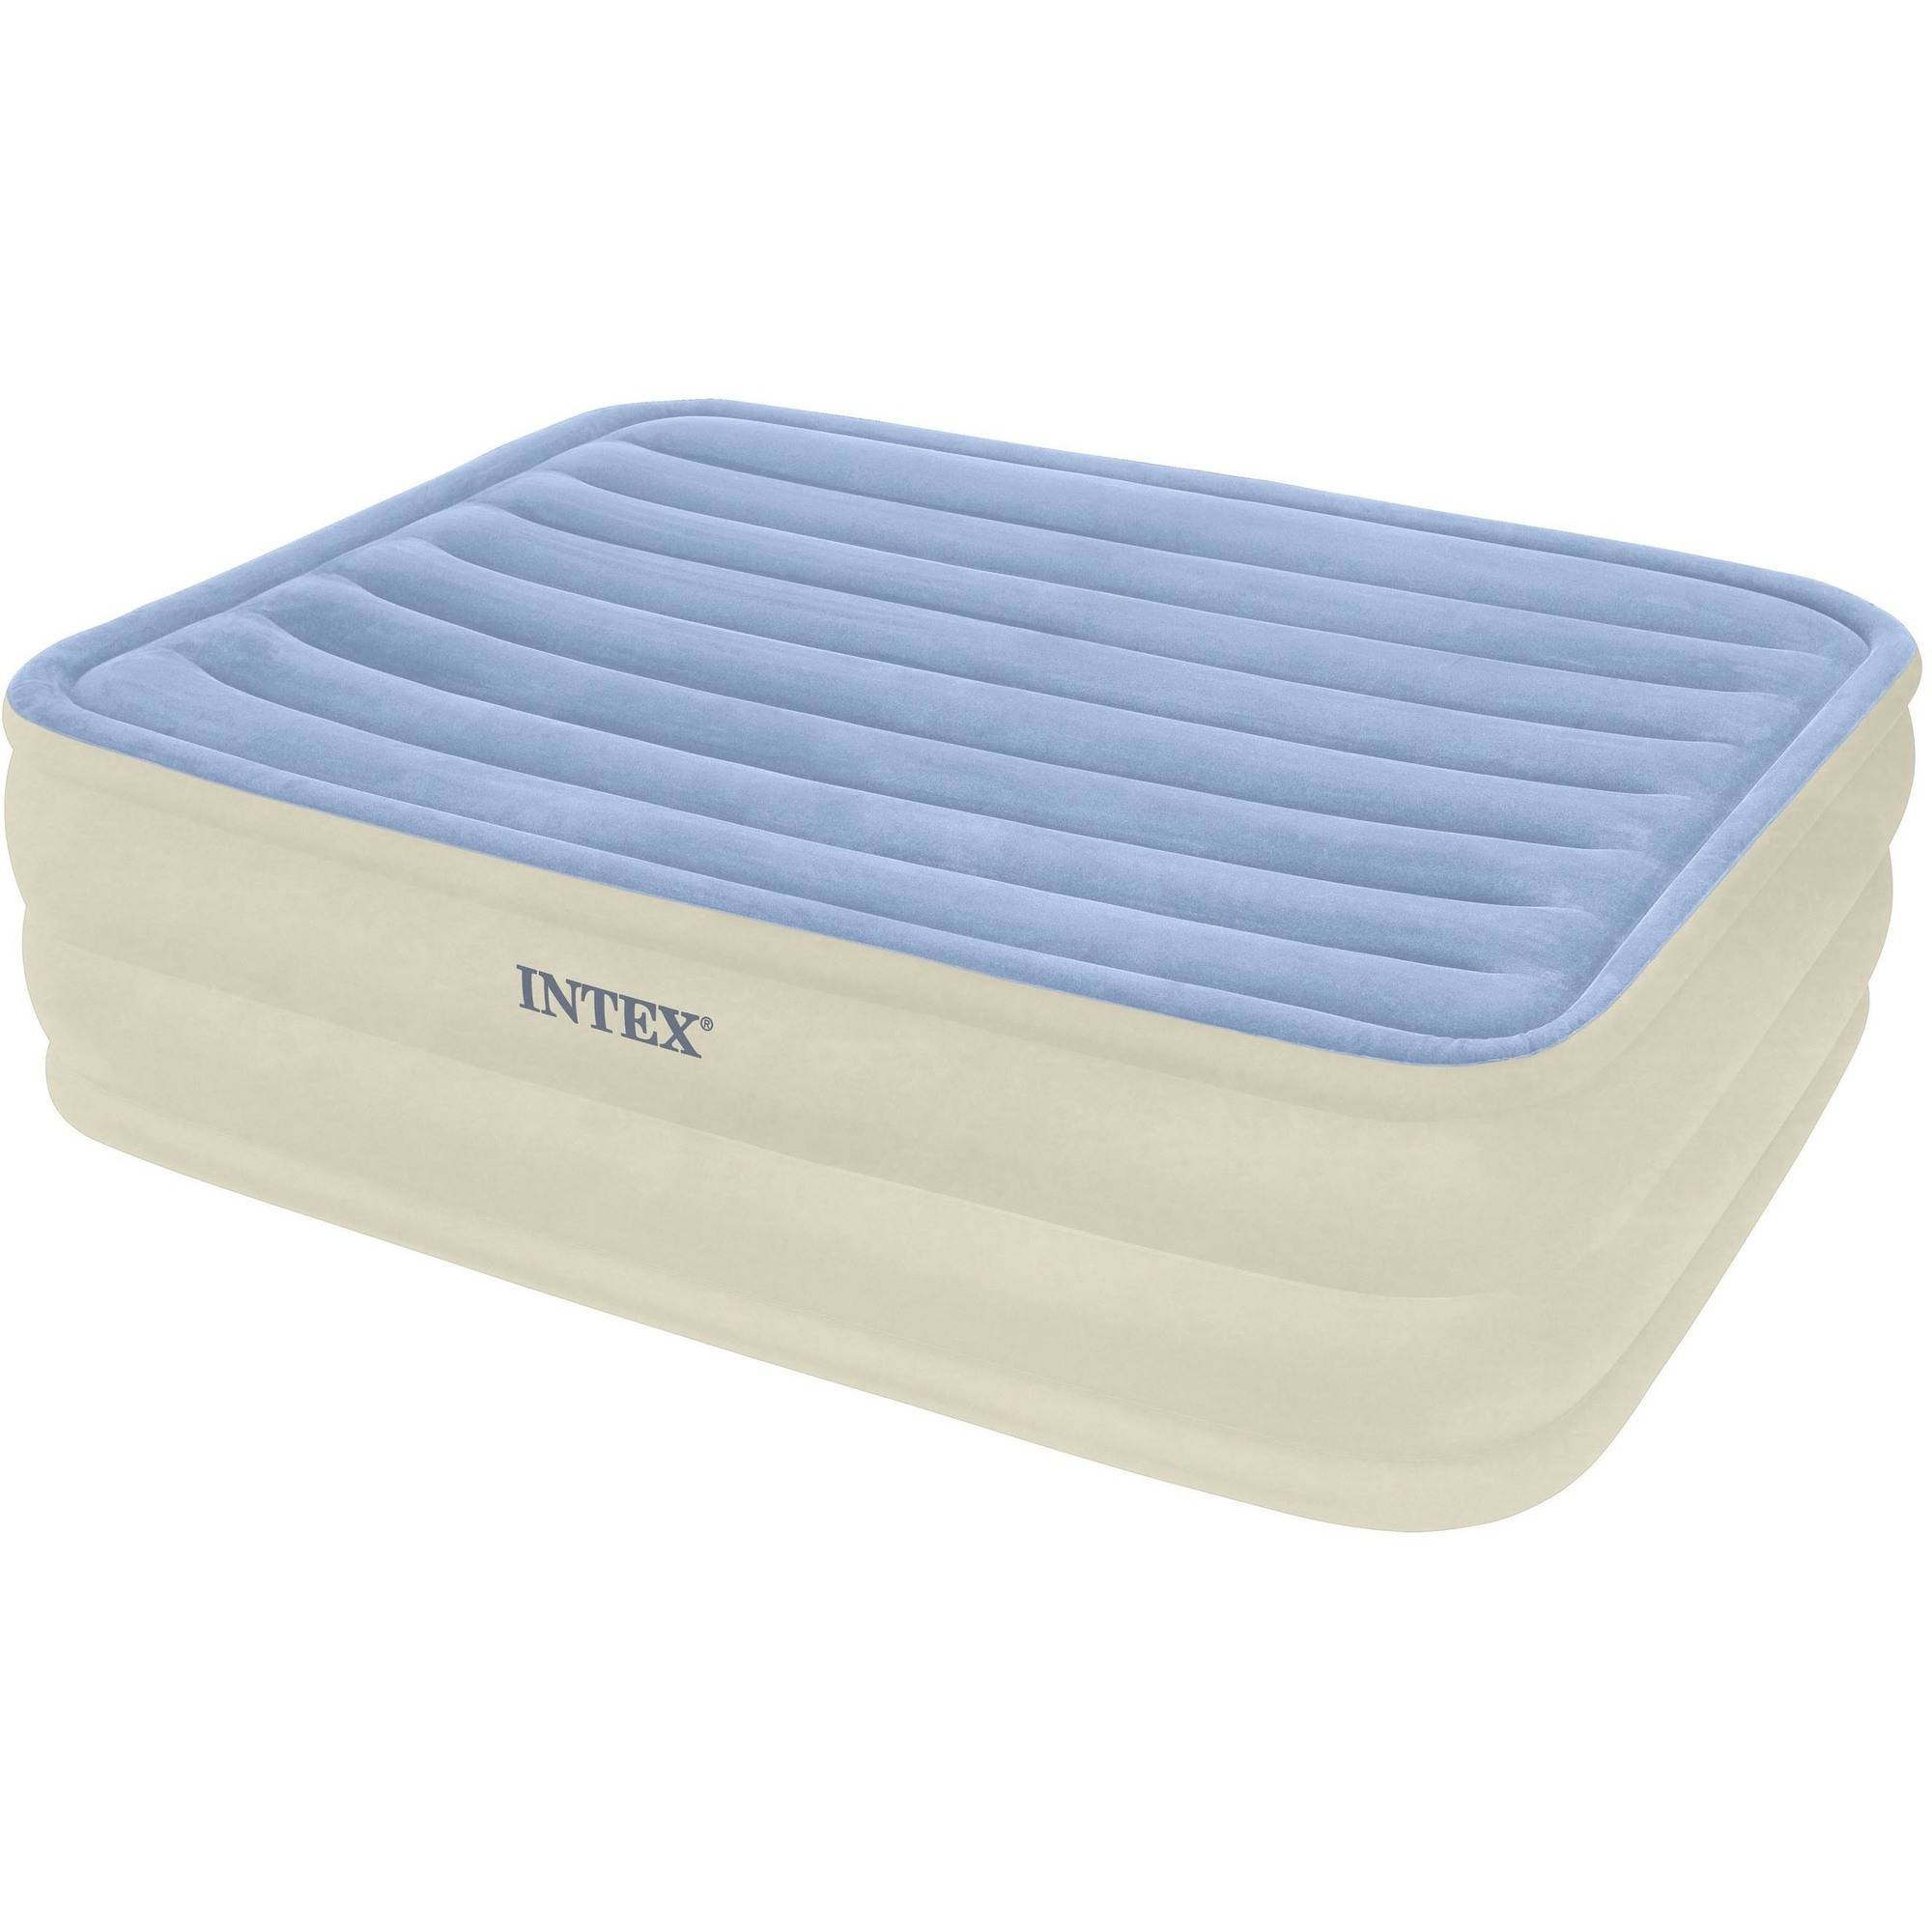 Air mattress bed bath and beyond where to buy a mattress for Where to buy mattresses